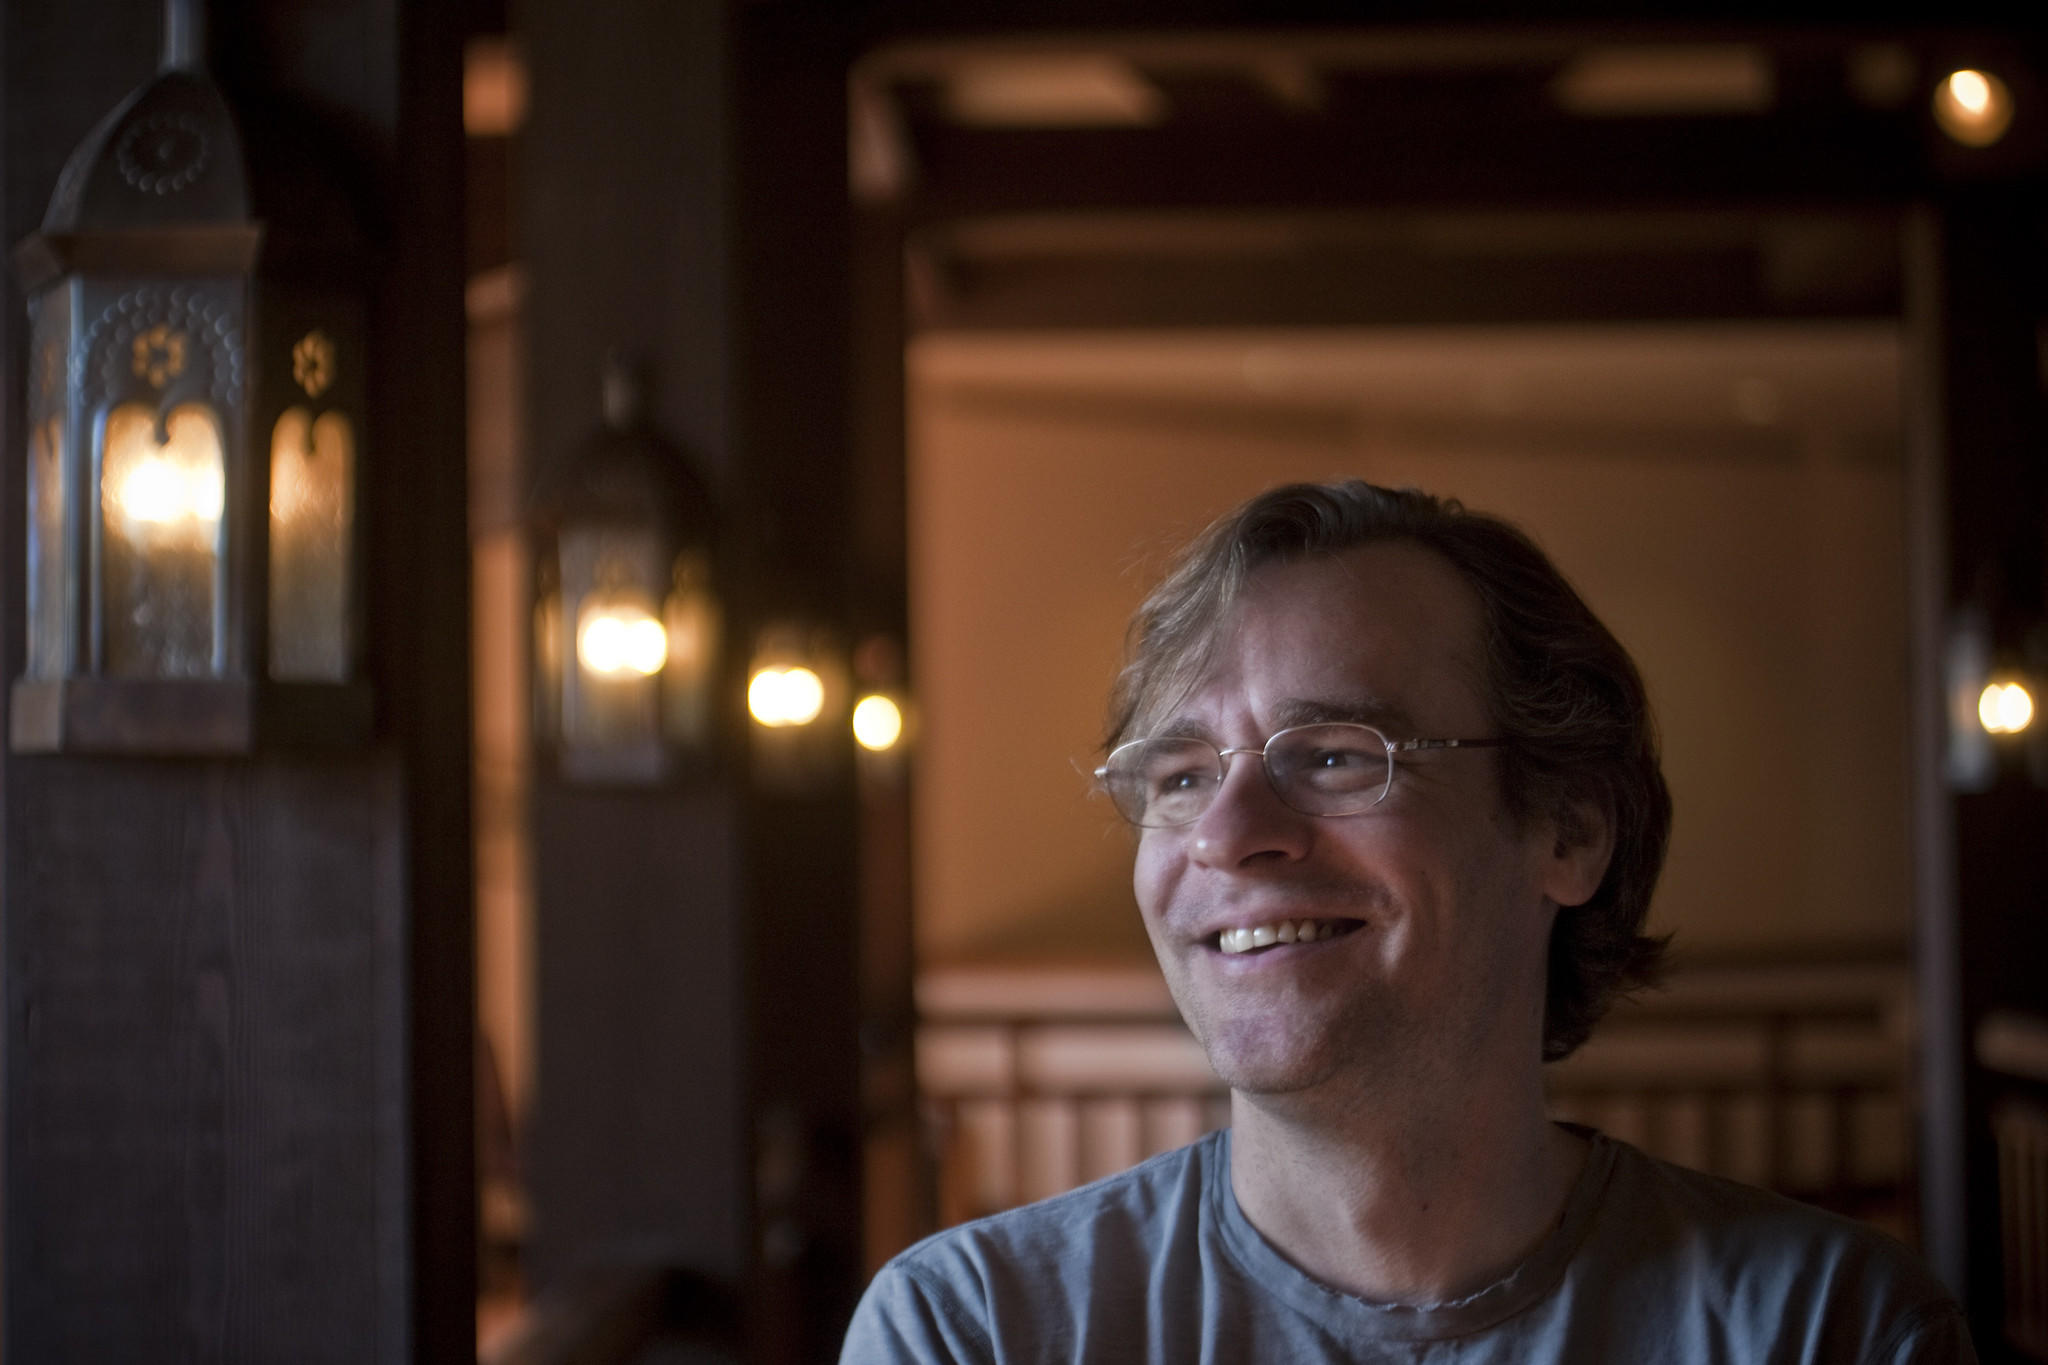 Actor Robert Sean Leonard will be host for Selected Shorts at the Getty.